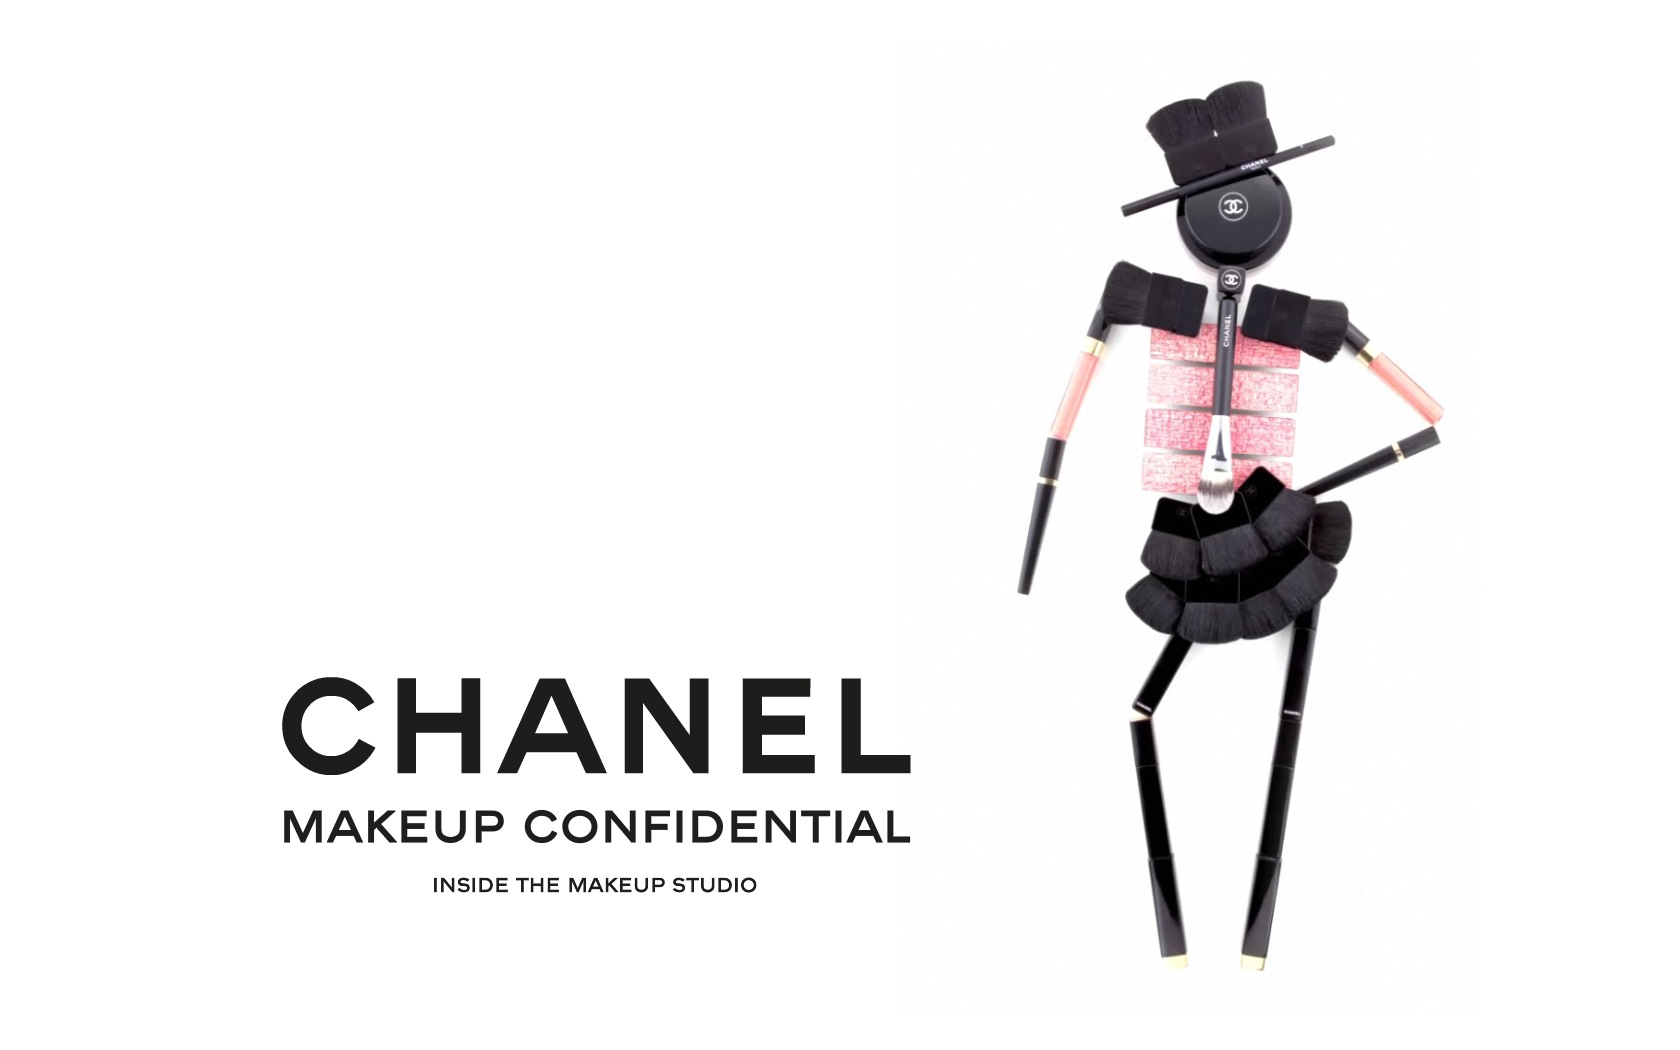 Chanel Makeup Confidential Screenshots, screen capture - Softpedia